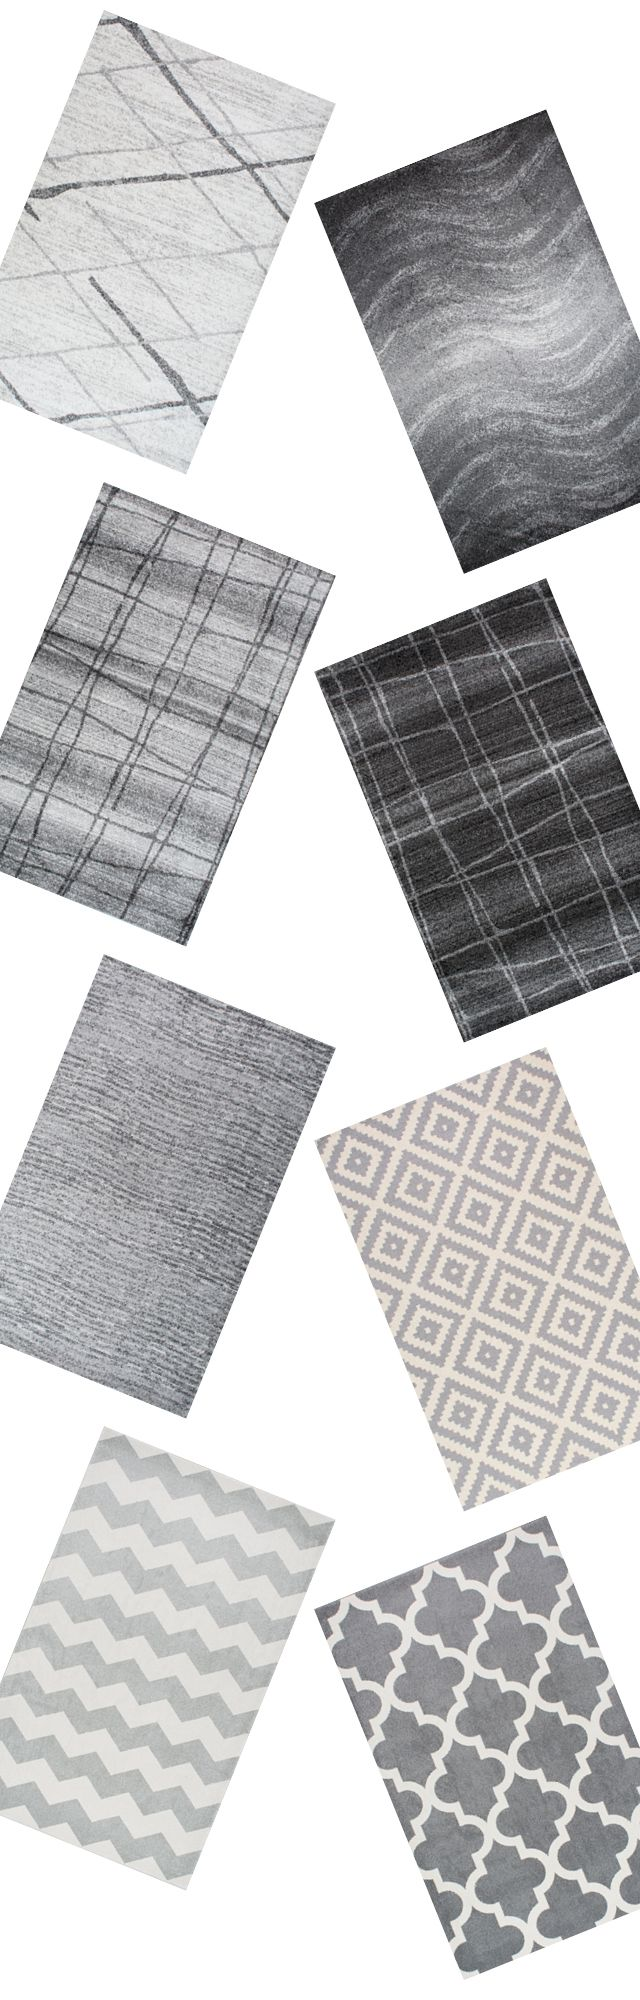 Grey on grey. Super modern and so cool. Visit Rugs USA for stylish options and a wide variety of colors, weaves, and textures with